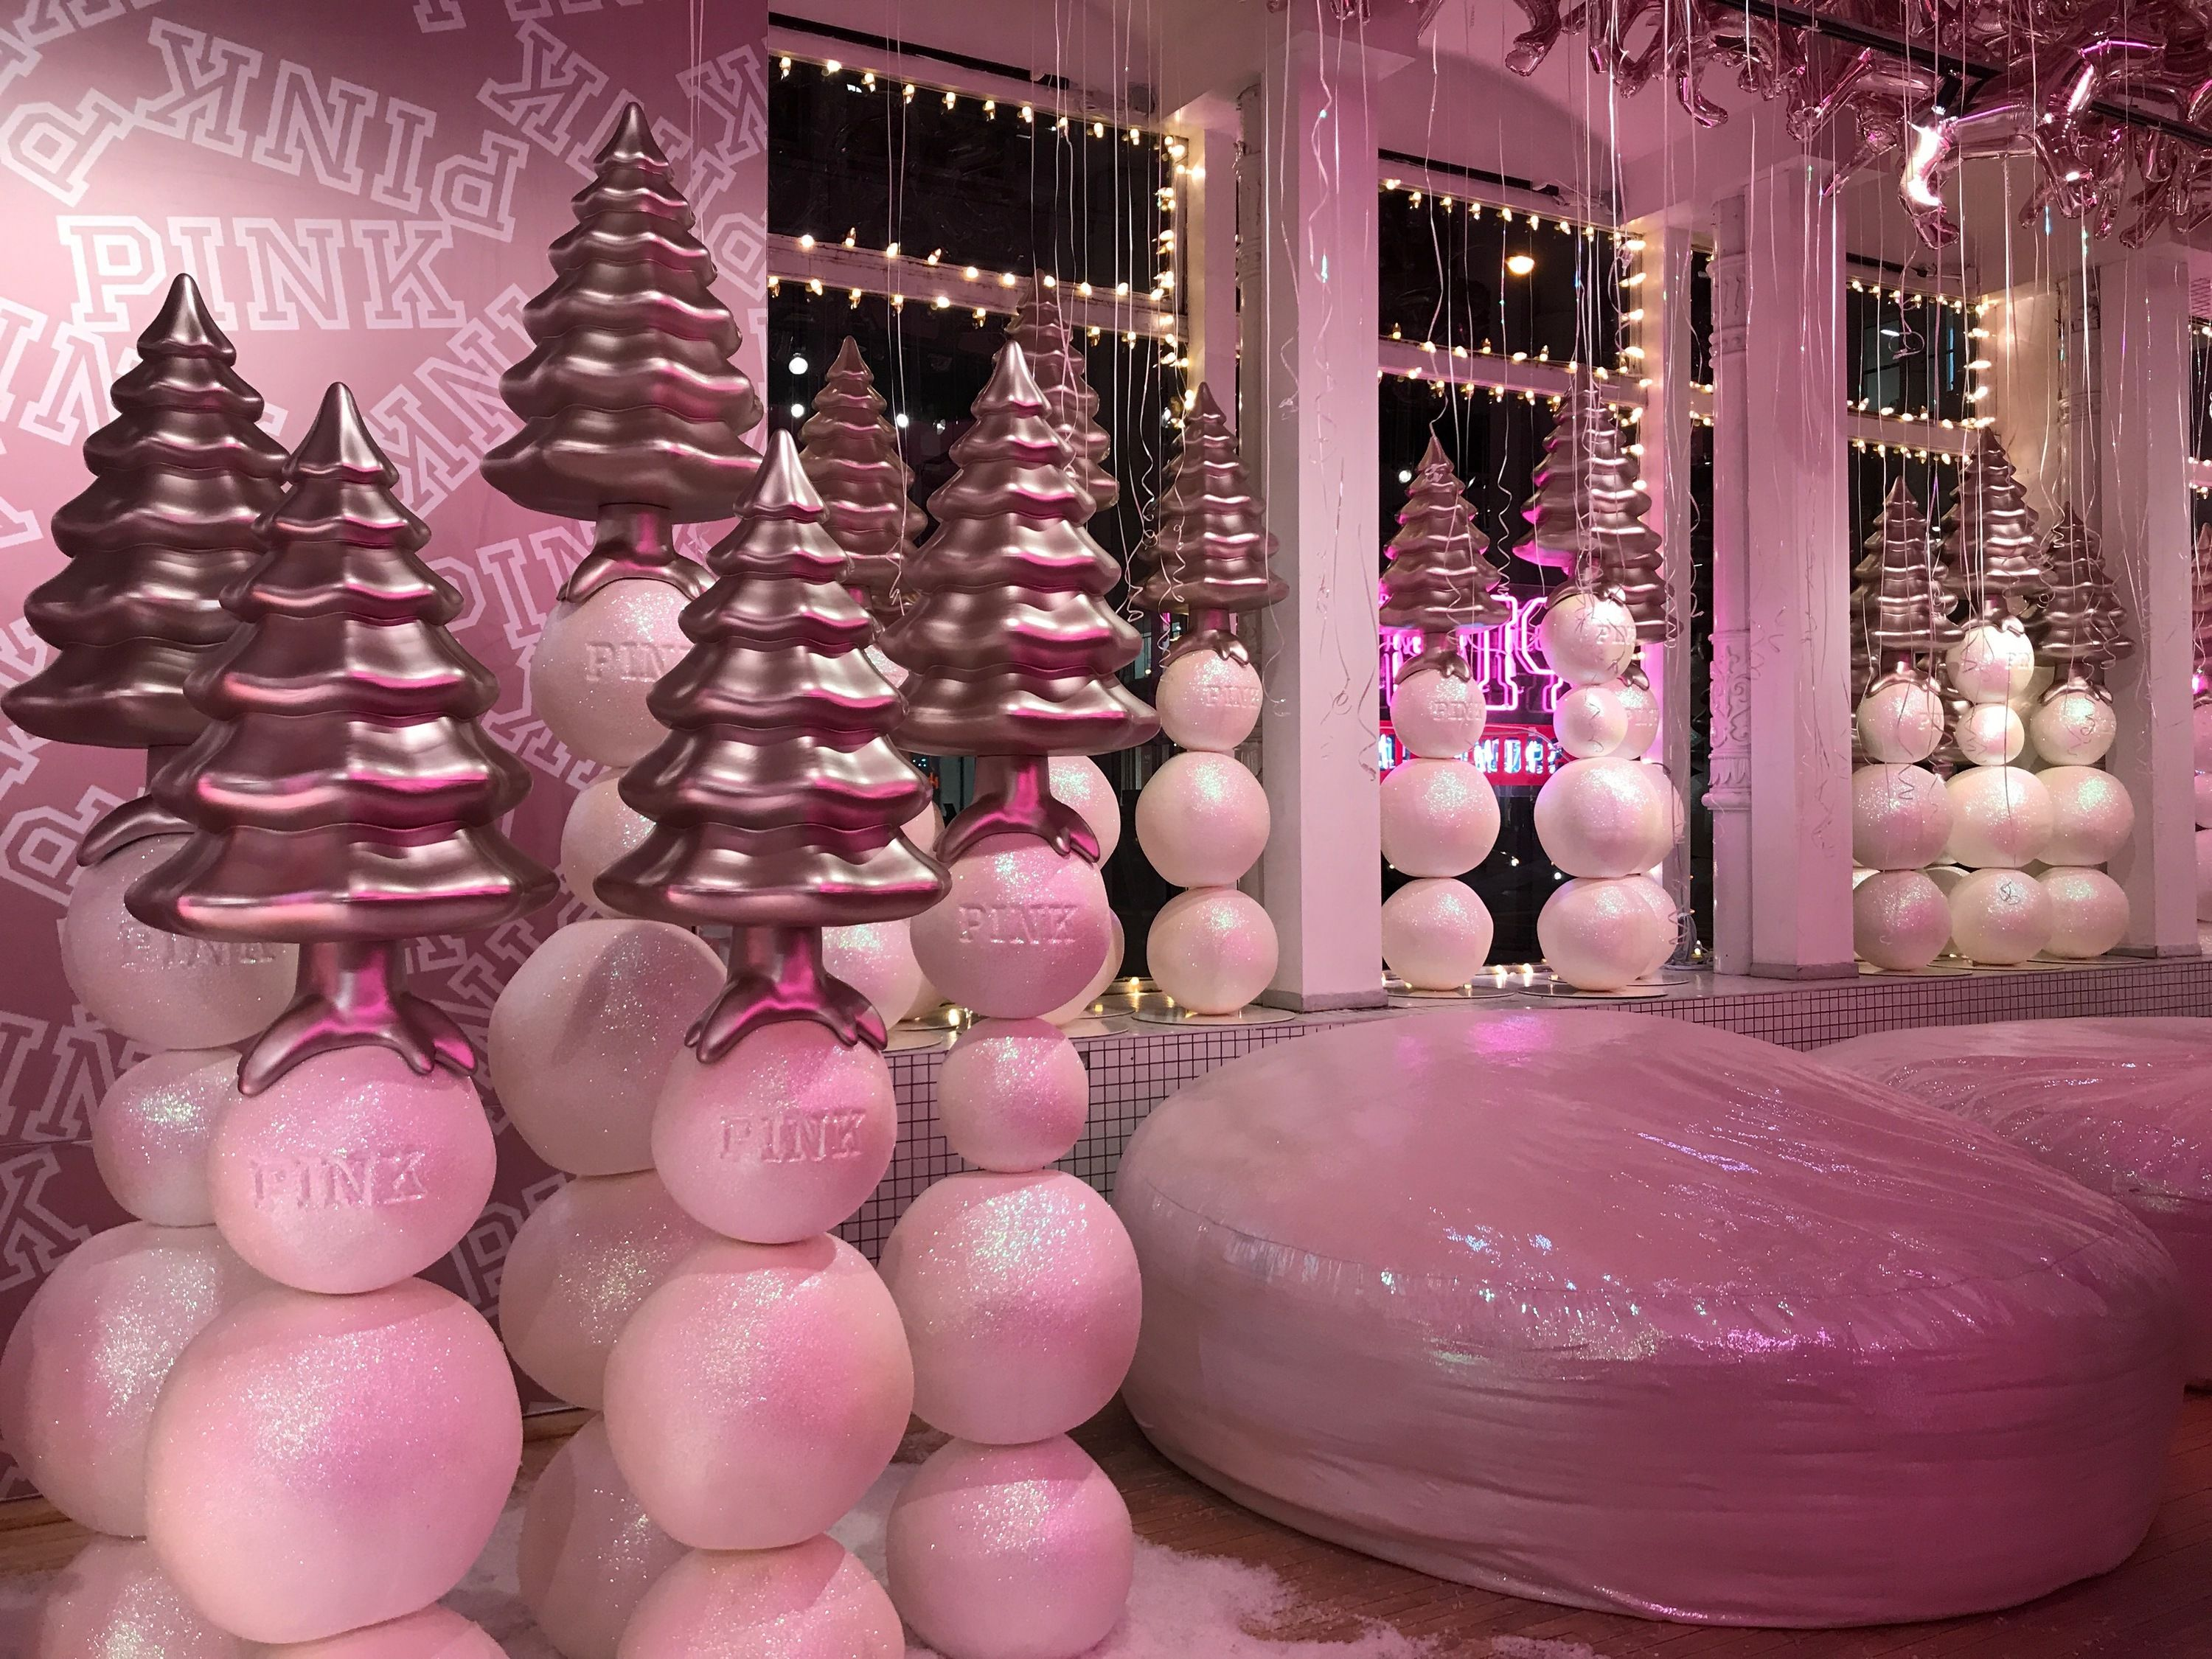 Gigantic Christmas Decorations Nyc 2020 Pose in a giant snow globe at a new Victoria's Secret Pink holiday